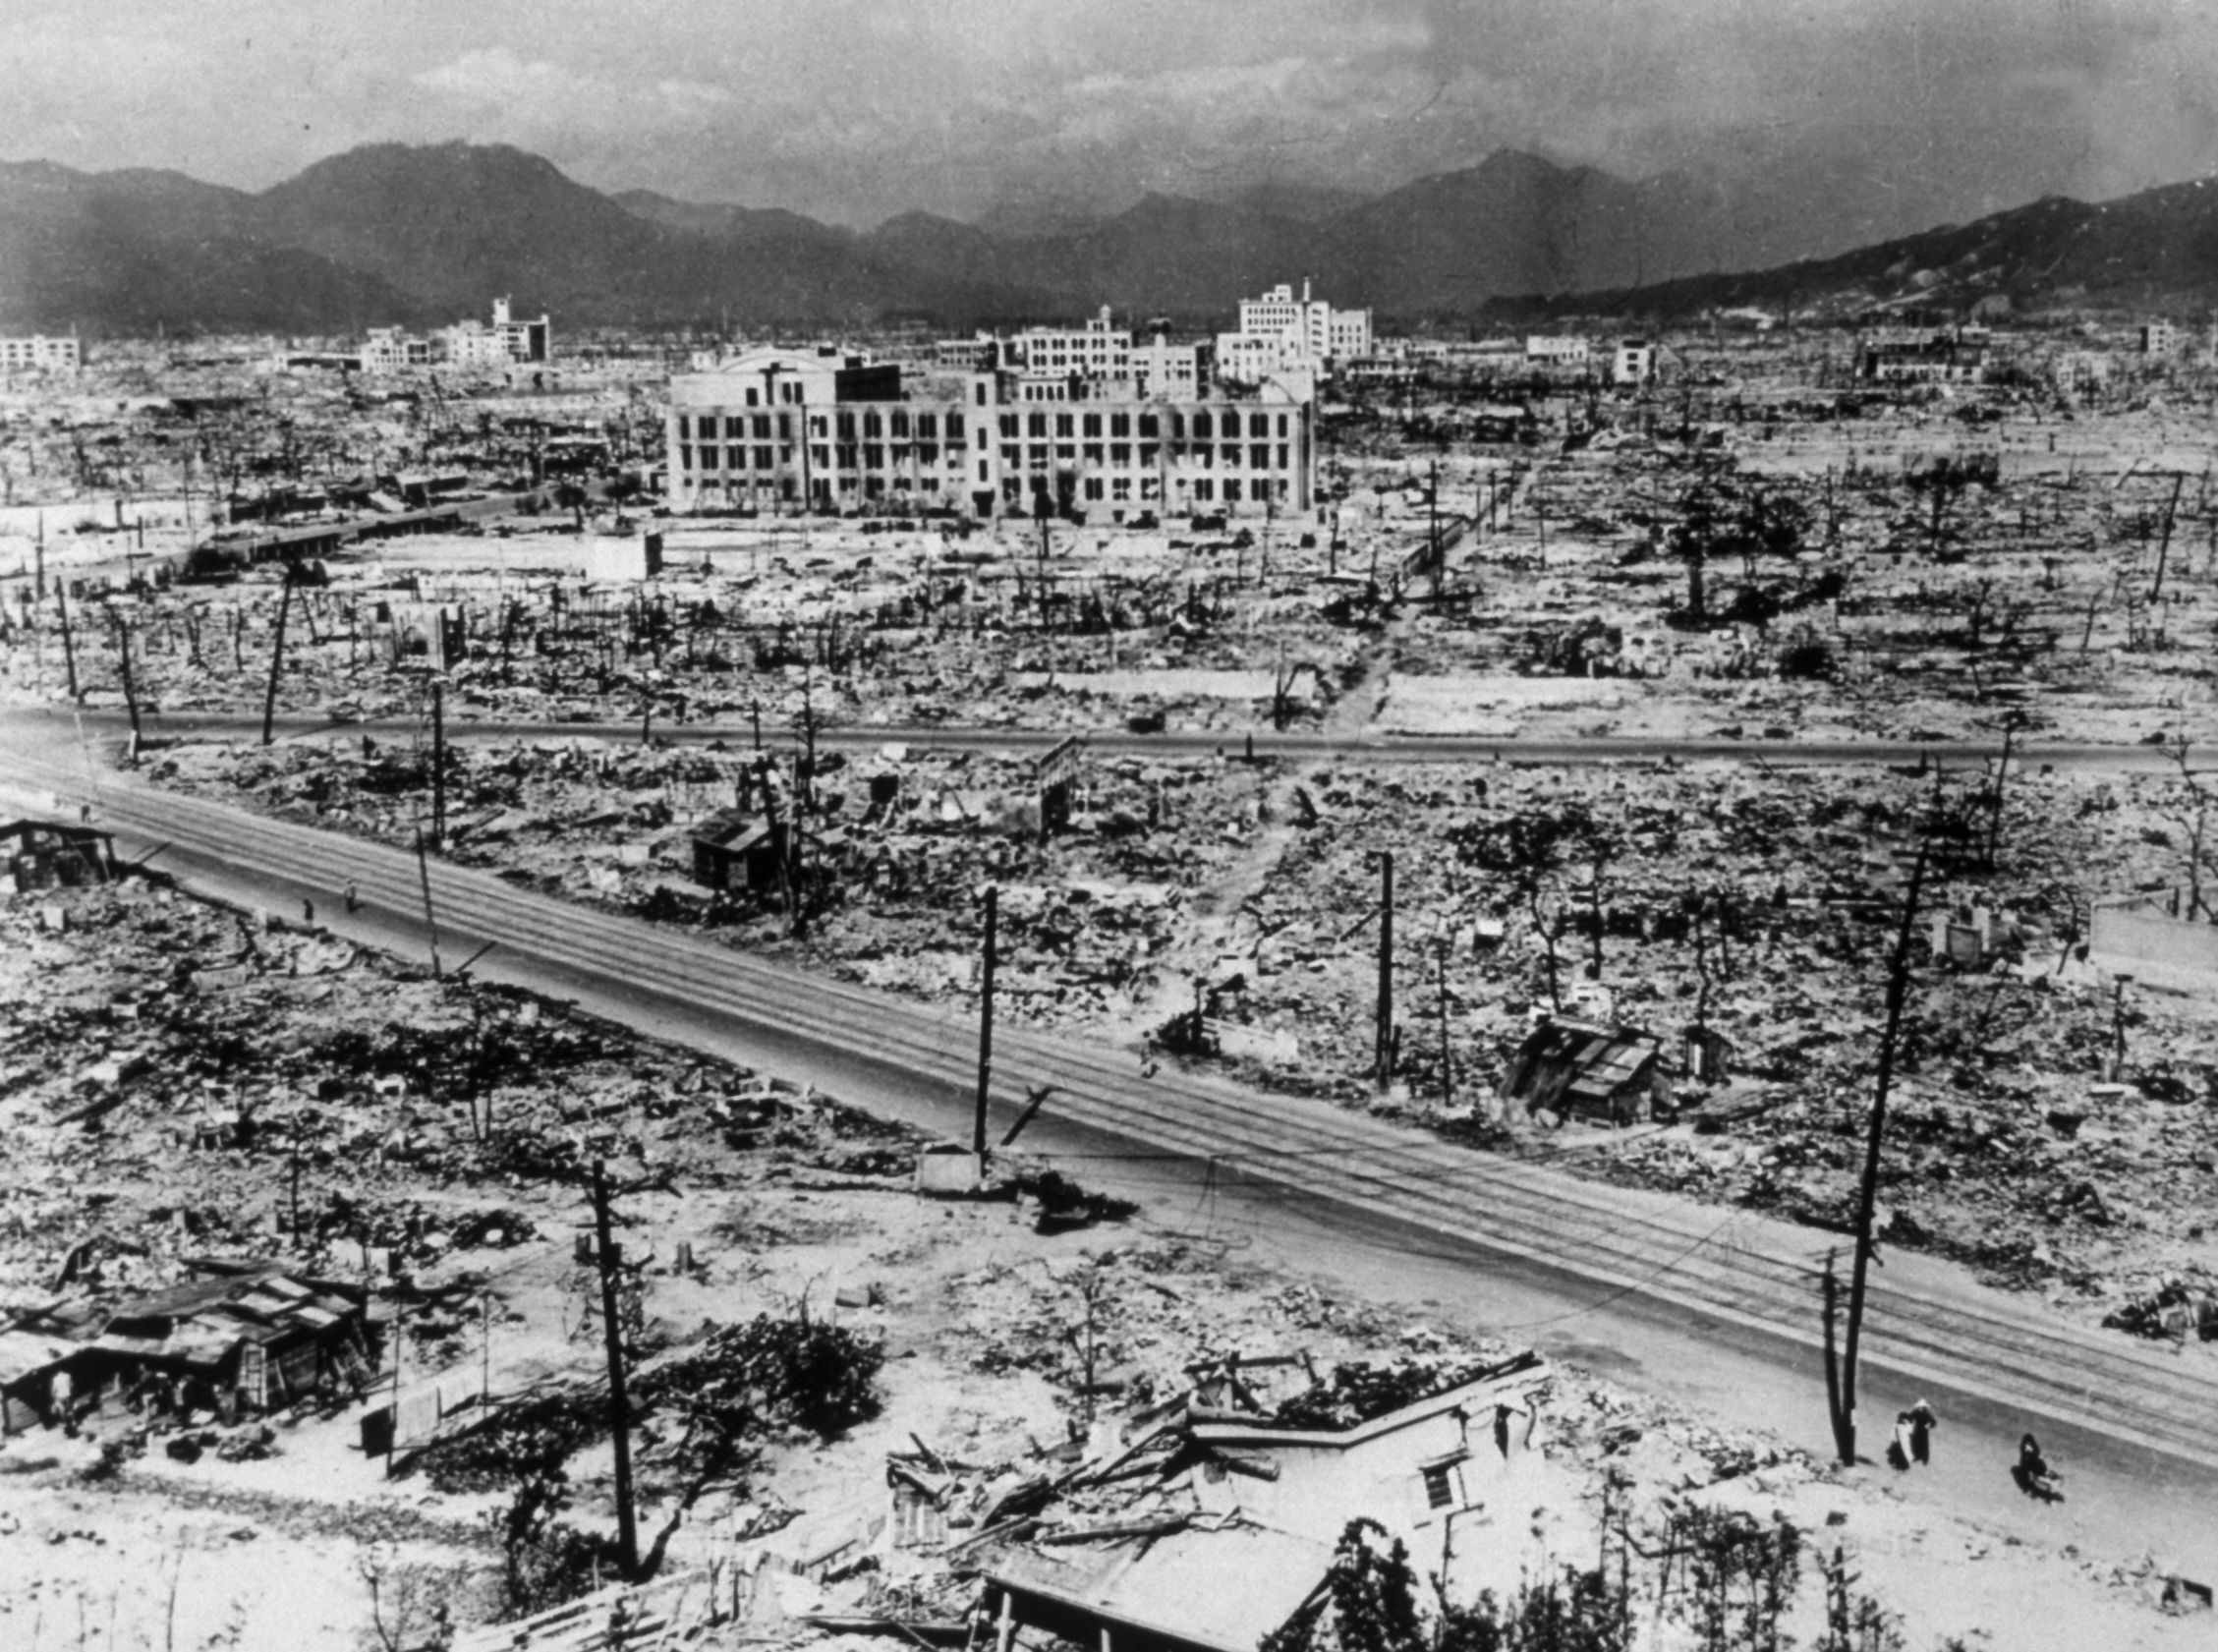 a history of the dropping of the atomic bombs on hiroshima and nagasaki in august of 1945 American forces drop an atomic bomb on nagasaki - the second such attack on japan in the past three days 6 august 1945 us drops atomic bomb on hiroshima.